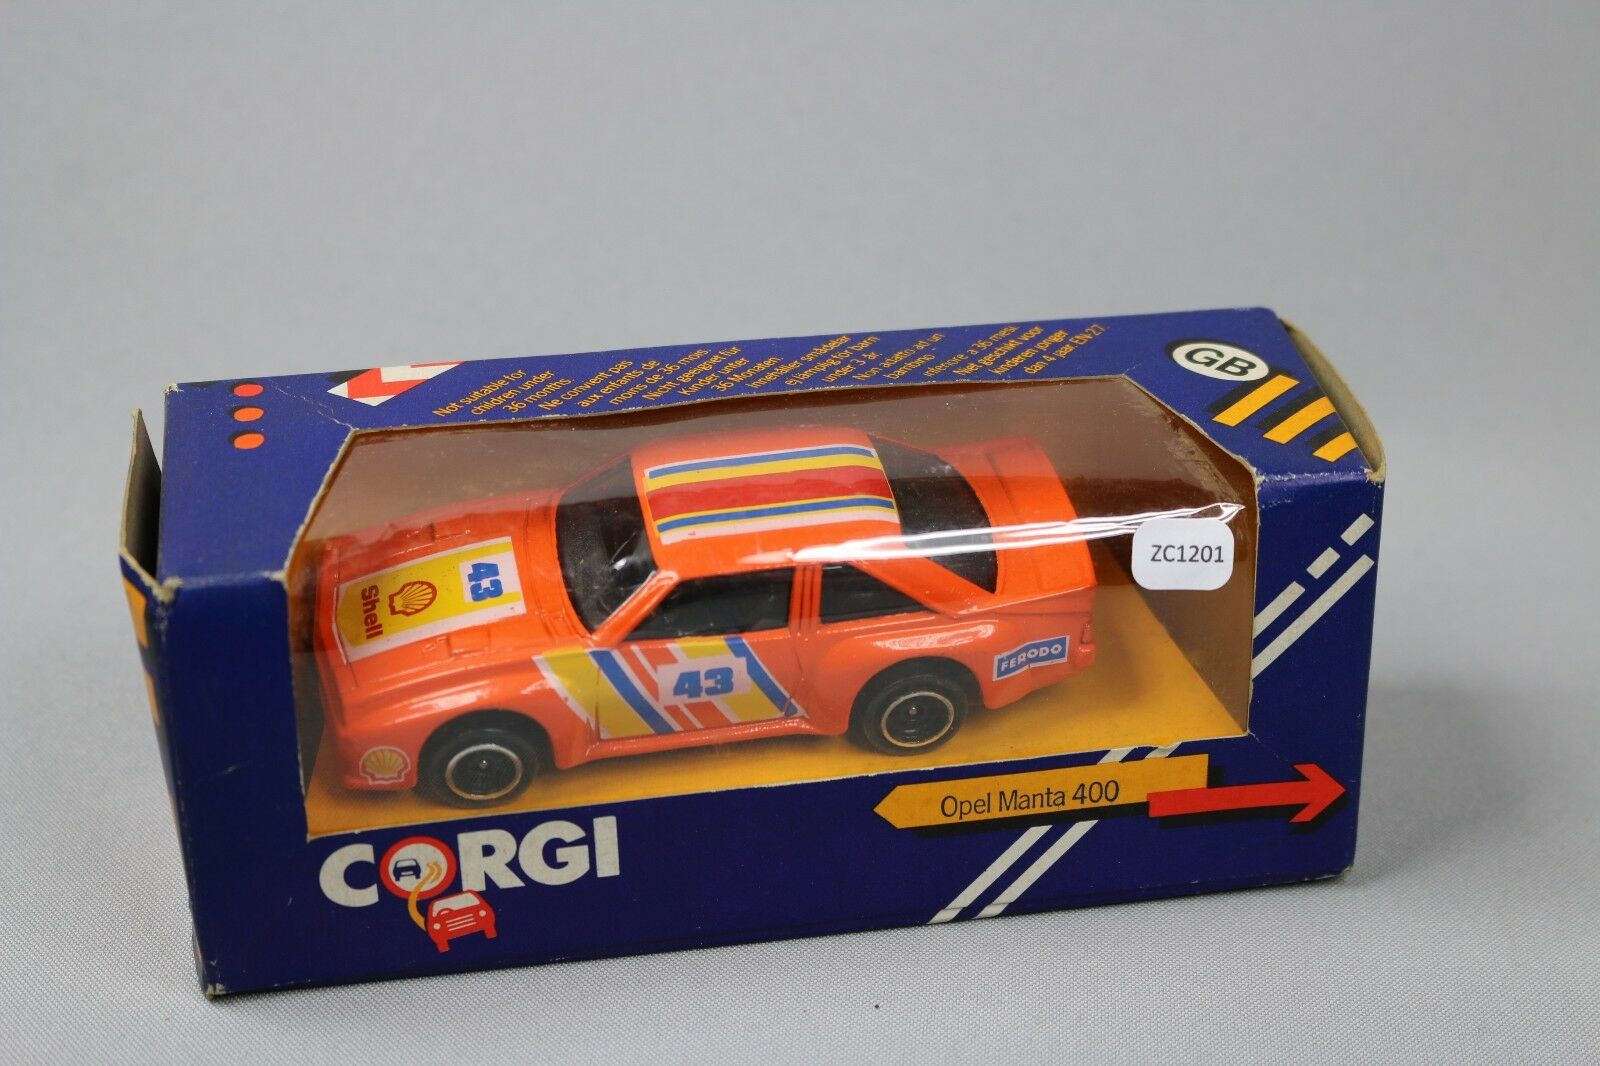 ZC1201 Corgi 102 Voiture miniature 1 43 Opel Manta 400 400 400 orange N° 43 Ferodo Shell 339783